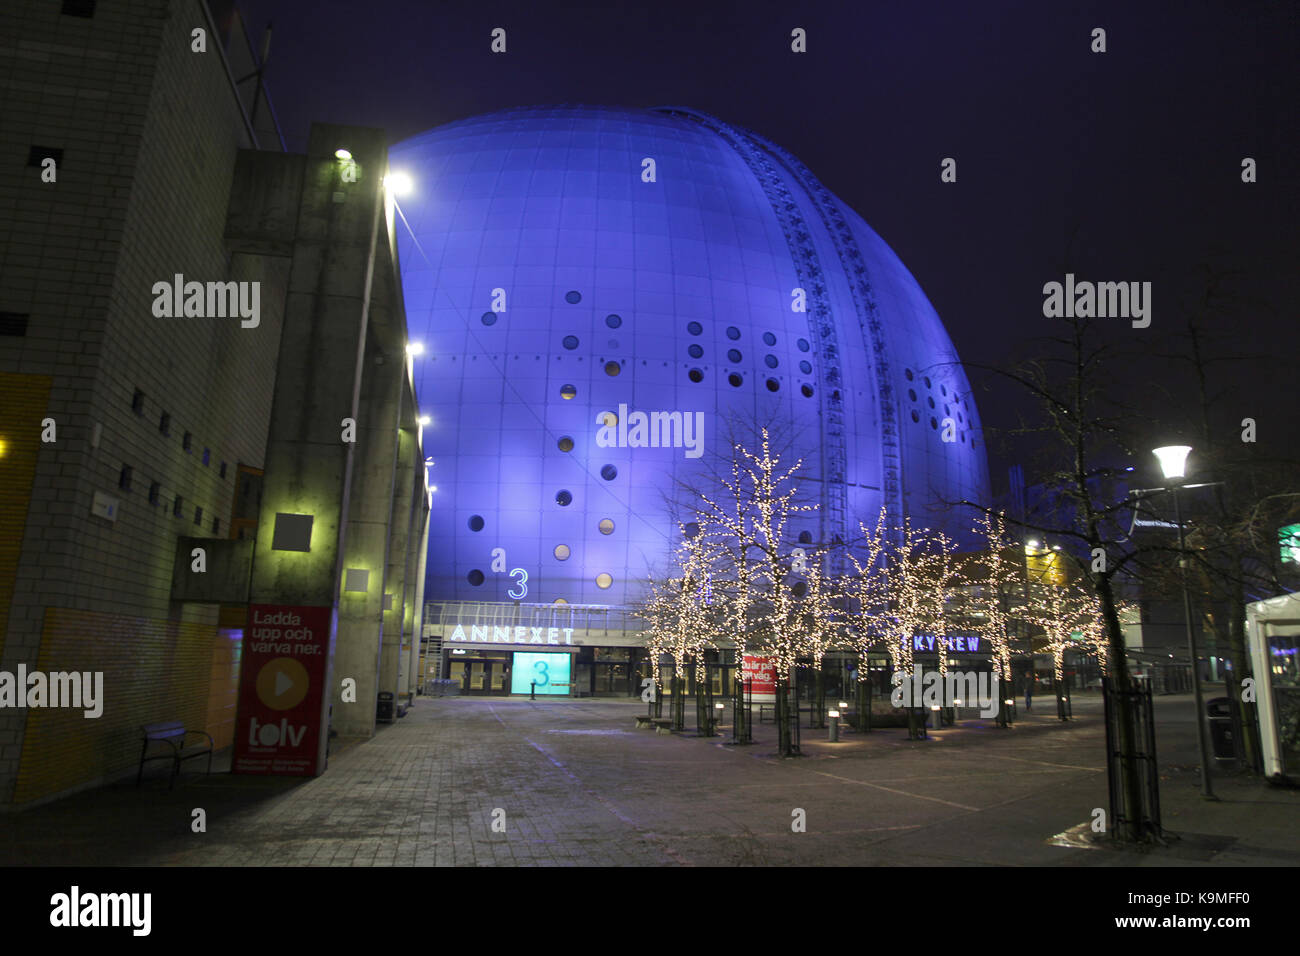 STOCKHOLM GLOBEN ARENA in facade lightning and Christmas decorations  2016 - Stock Image